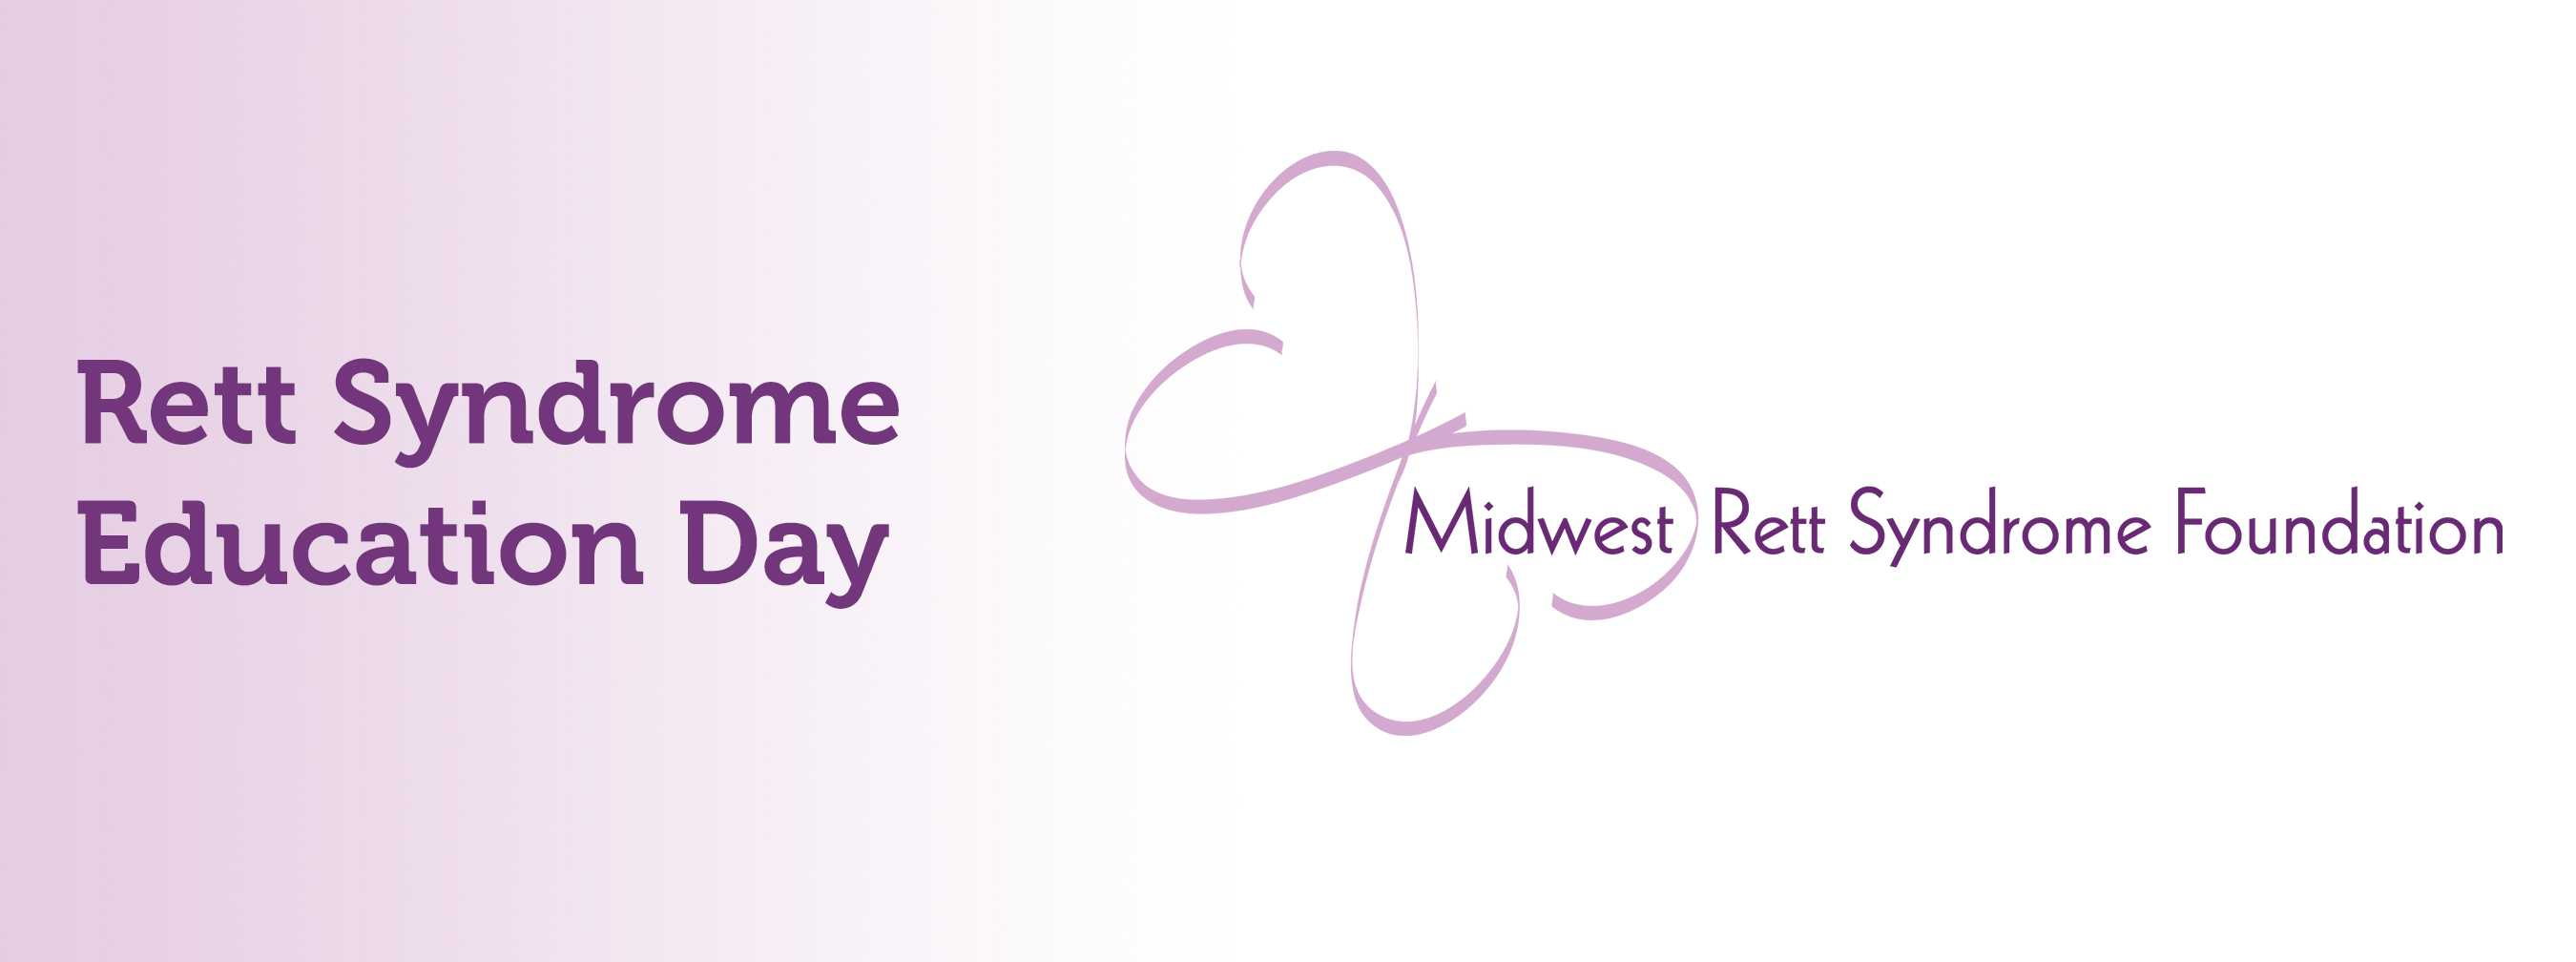 Rett Syndrome Education Day with the Midwest Rett Syndrome Foundation